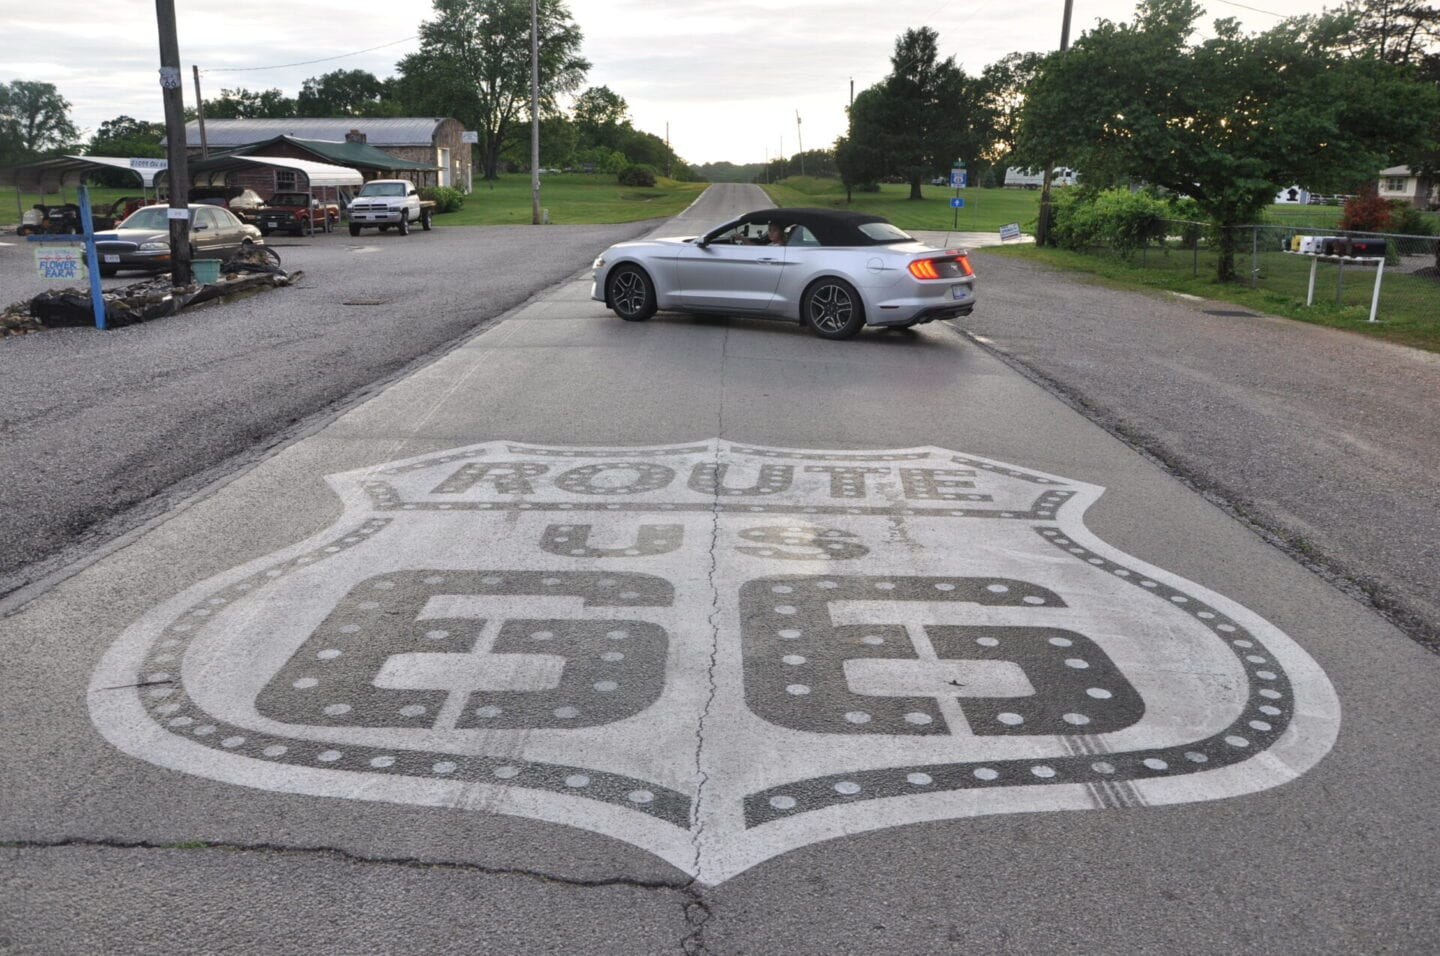 Route 66 and Car